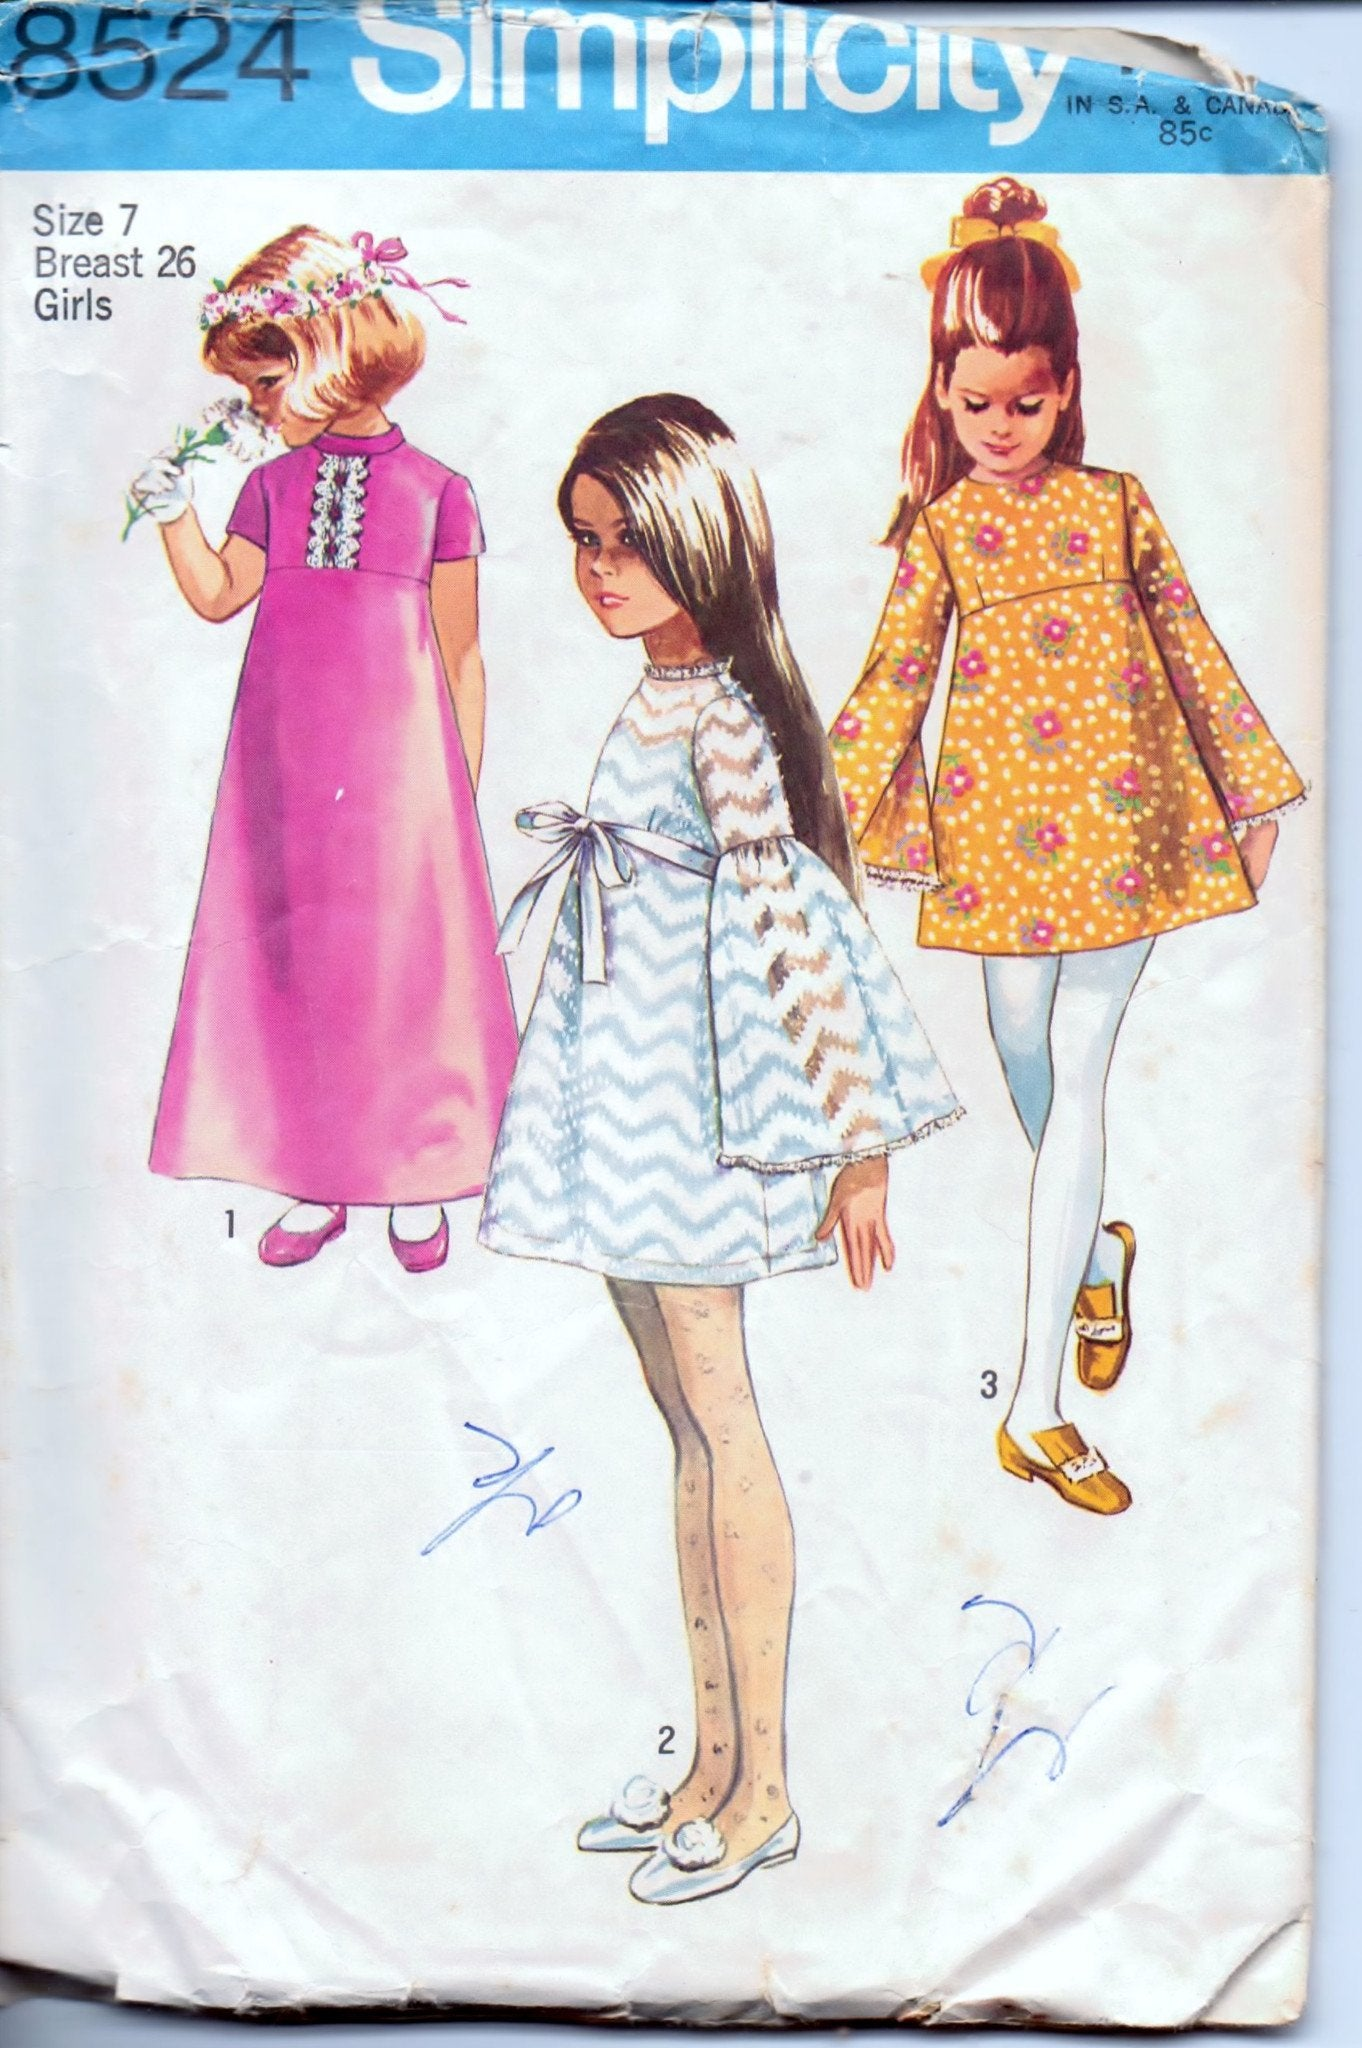 Simplicity 8524 Girls' Dress Short or Long Vintage 1960's Sewing Pattern - VintageStitching - Vintage Sewing Patterns